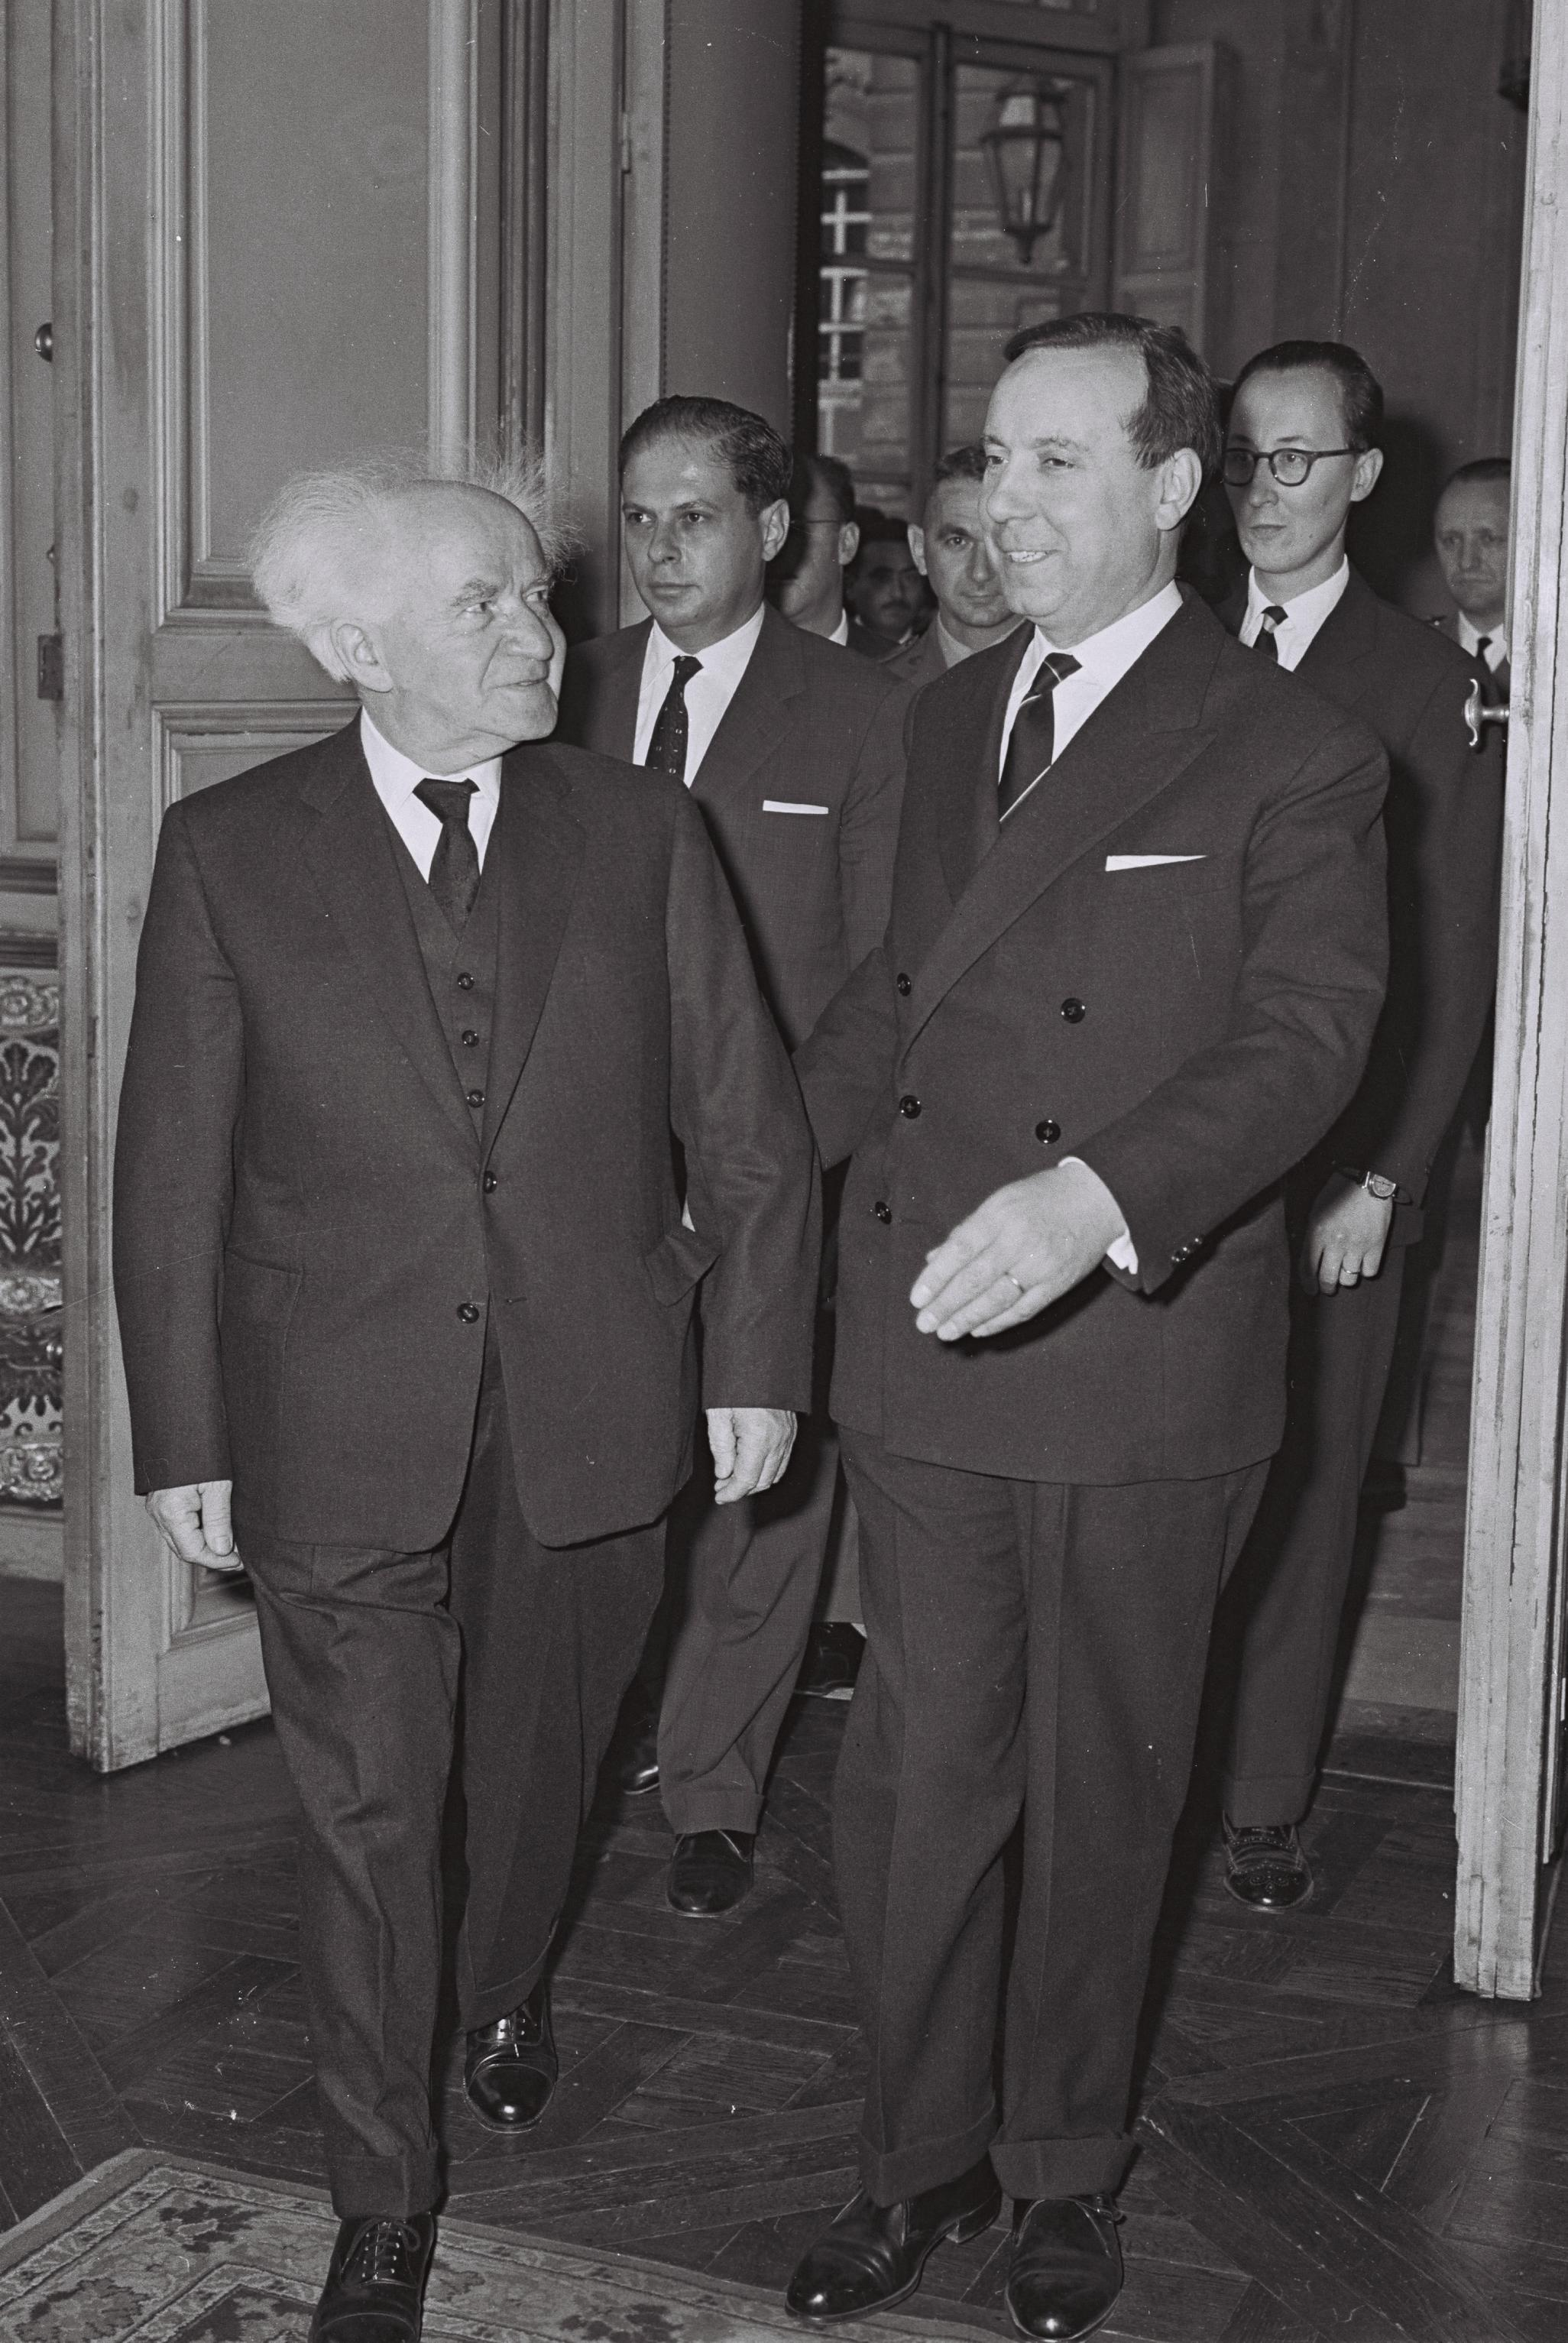 File:Michel Debre - David Ben Gurion 1960.jpg